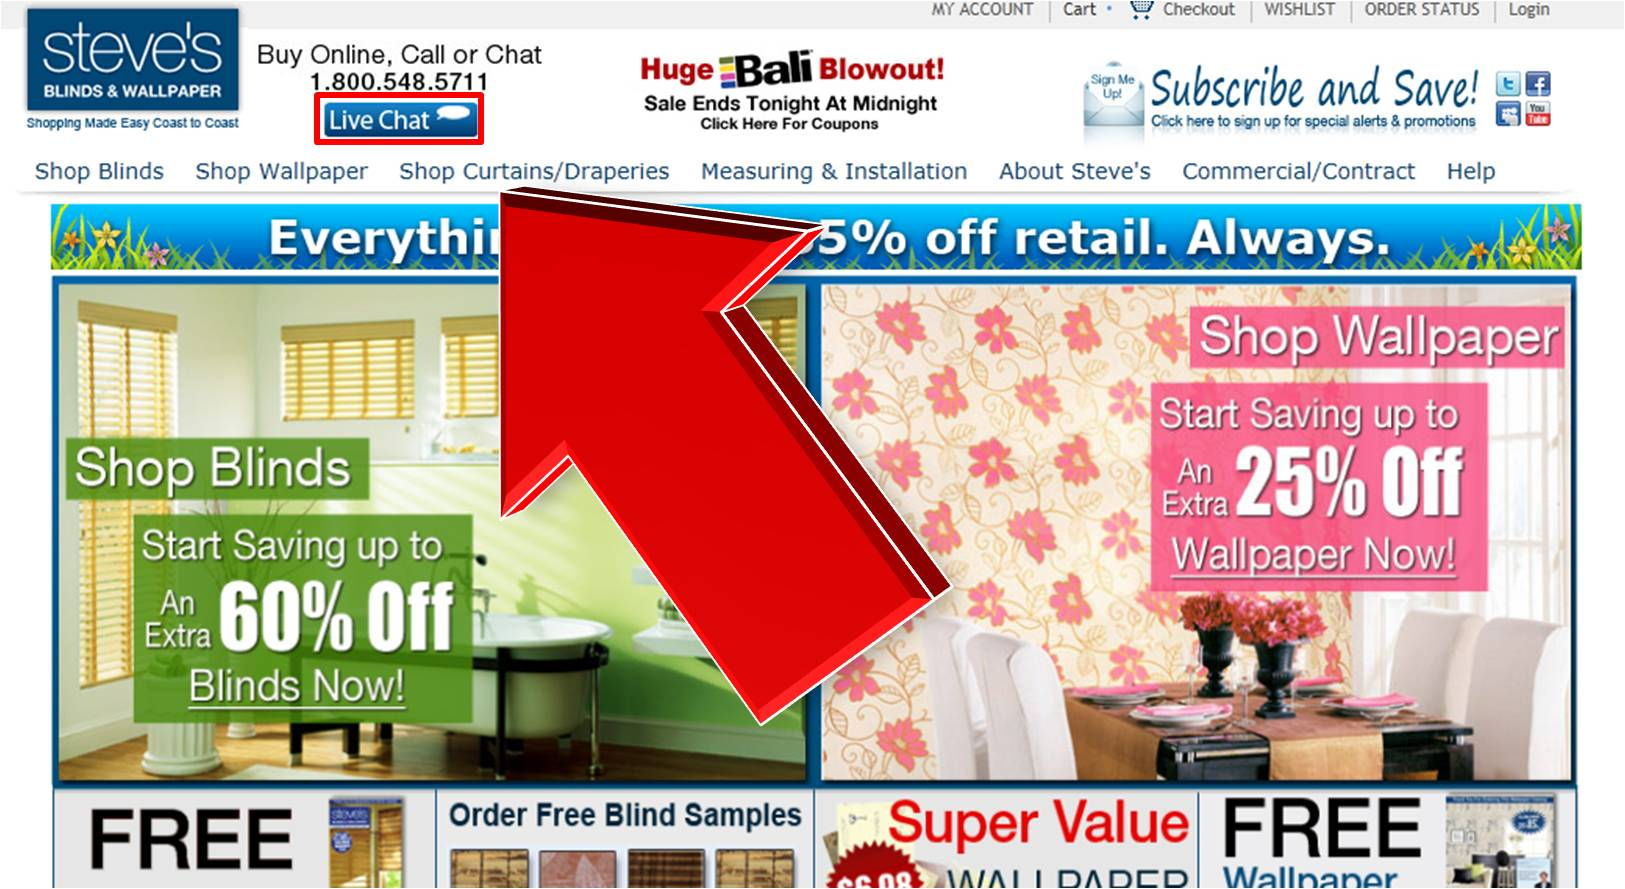 Steves Blinds and Wallpaper Coupons for November Here is the list of all Current Steves Blinds and Wallpaper Coupons and Promo Codes that are recently updated. The top categories you find here are Blinds and Shades, Wallpaper and other activities.